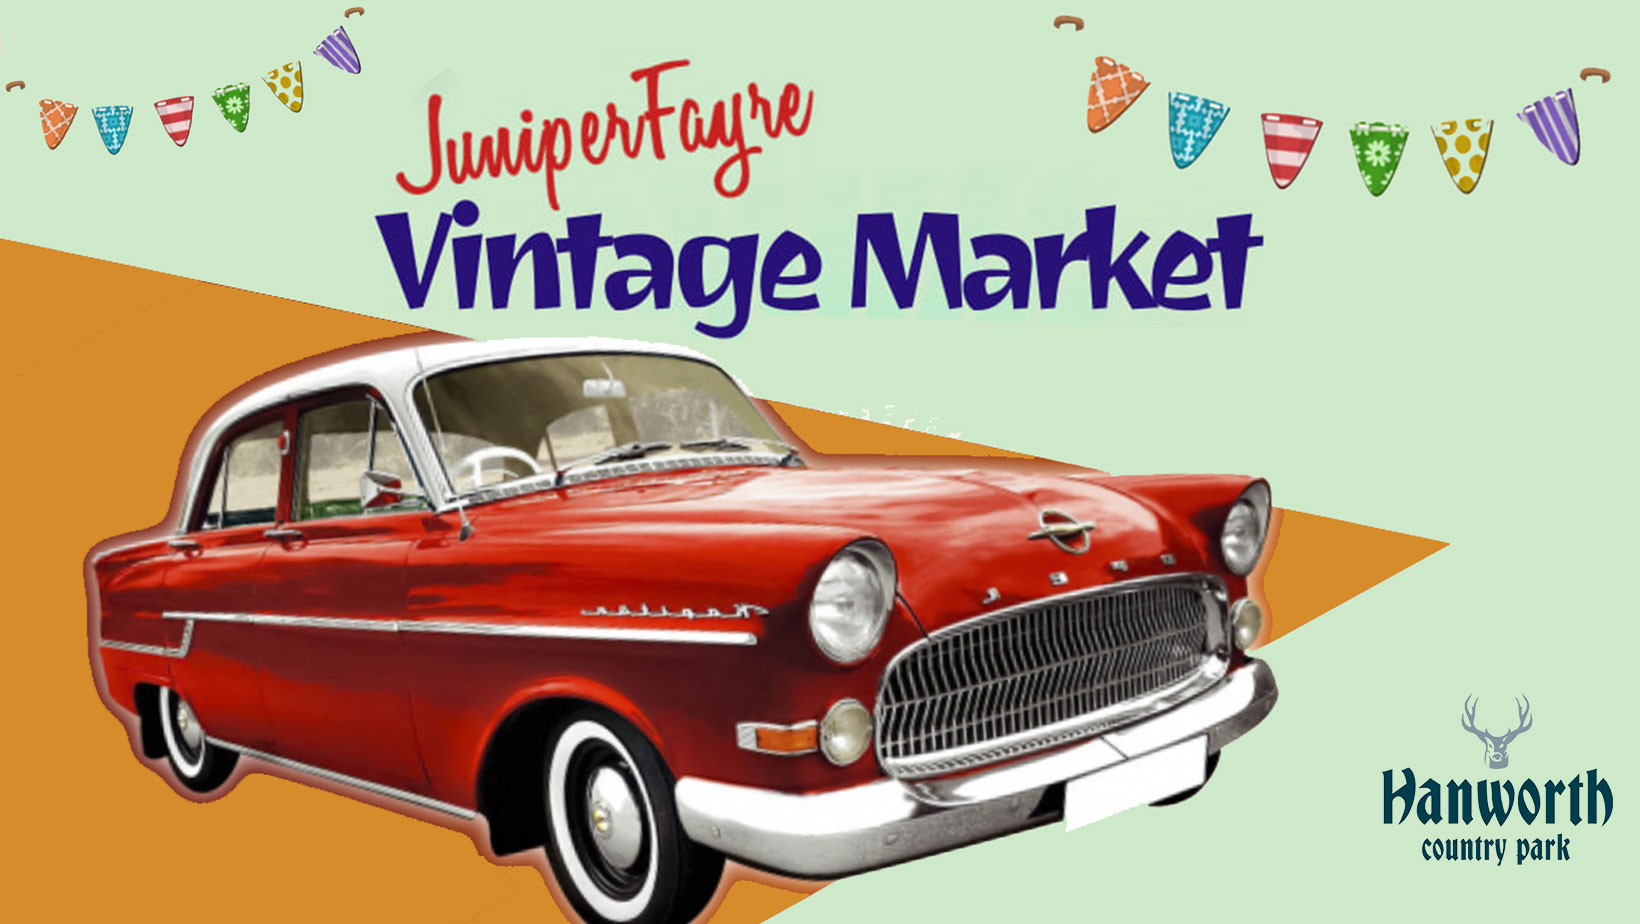 Vintage Market & Classic Car Show comes to Hanworth Country Park